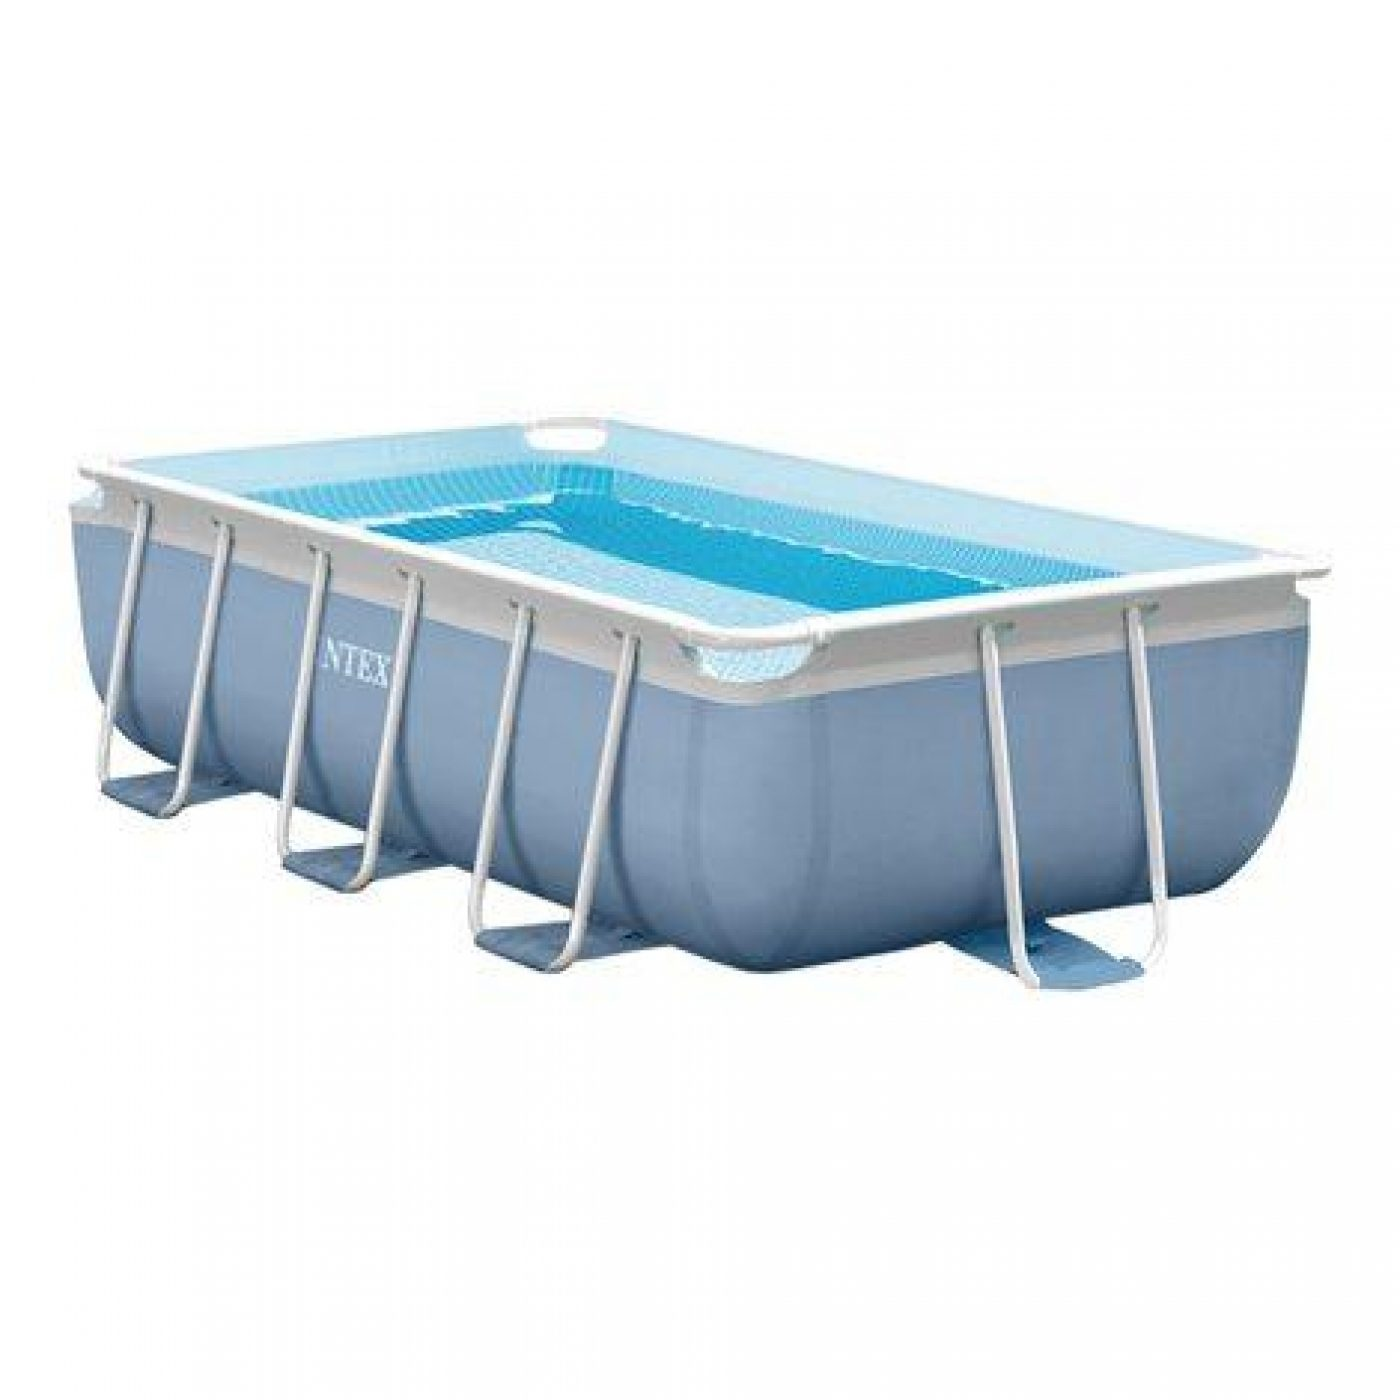 Piscina Intex 6000 Litros Medidas Piscina Desmontable Rectangular Intex Prisma Frame